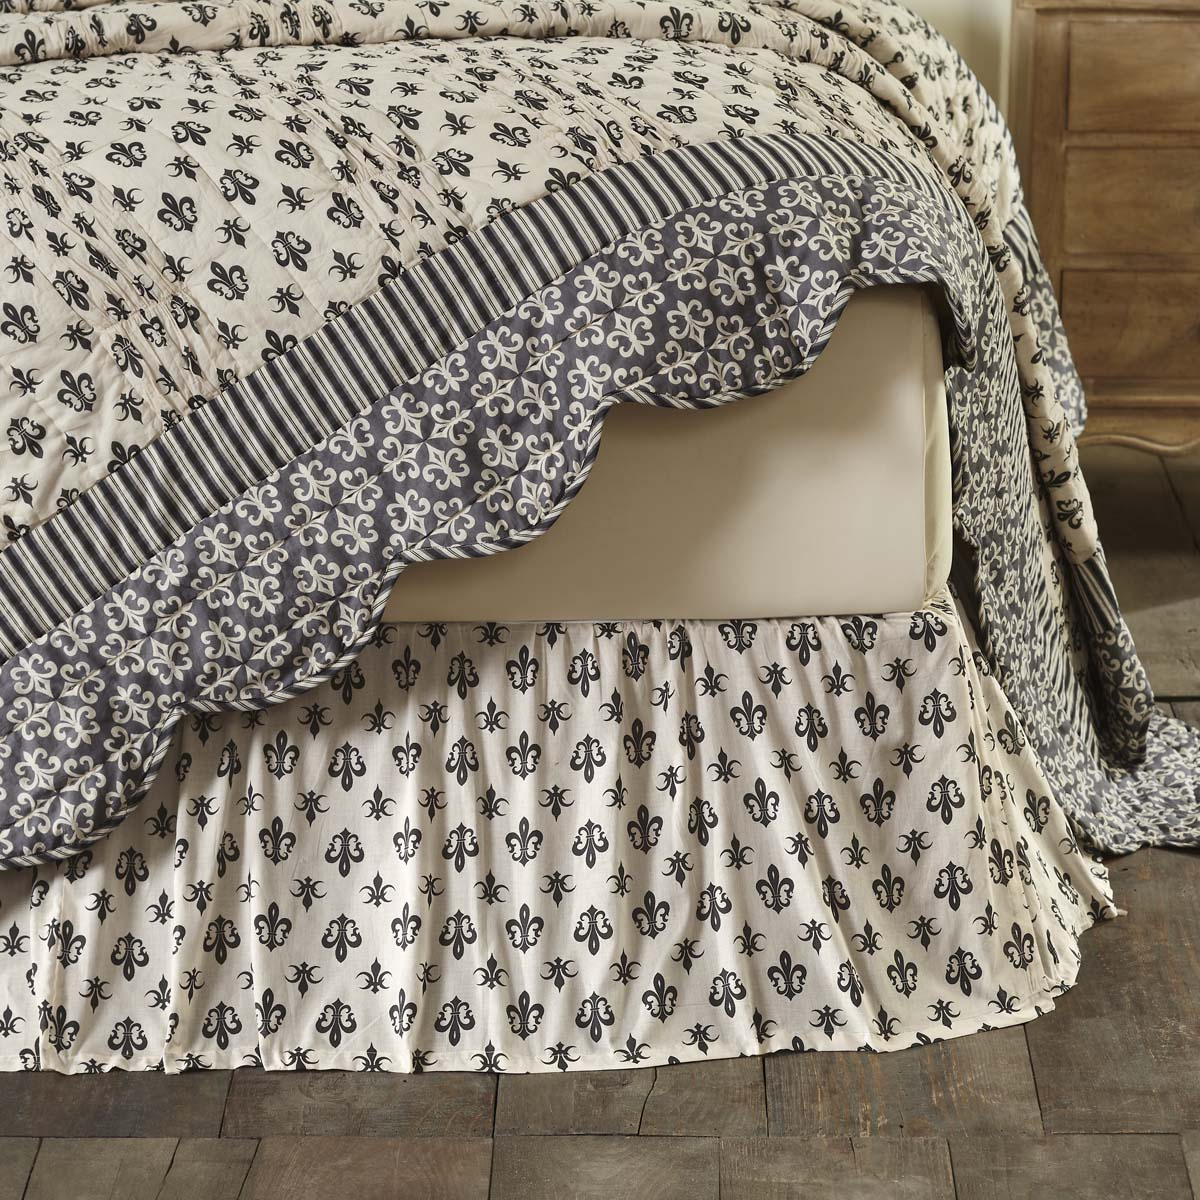 Elysee Queen Bed Skirt 60x80x16 - Woodrol